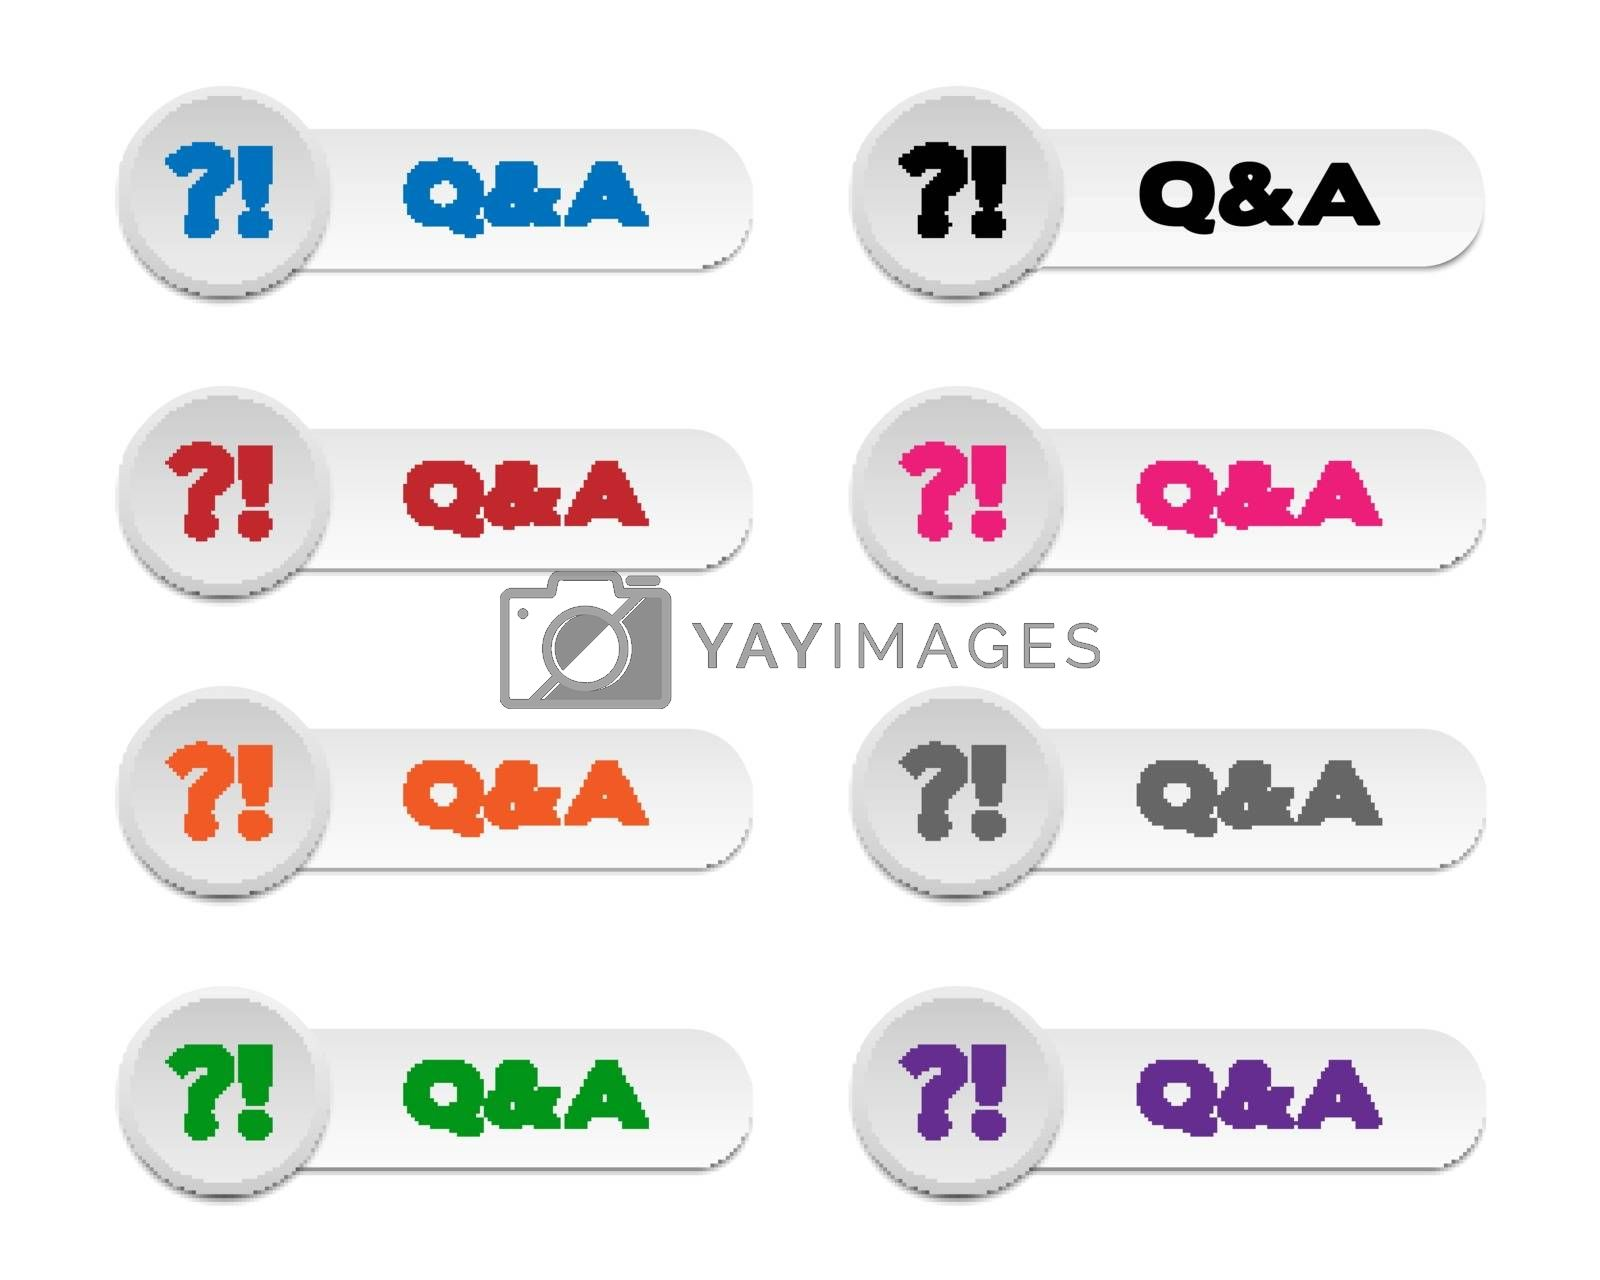 Royalty free image of Q&A buttons by simo988